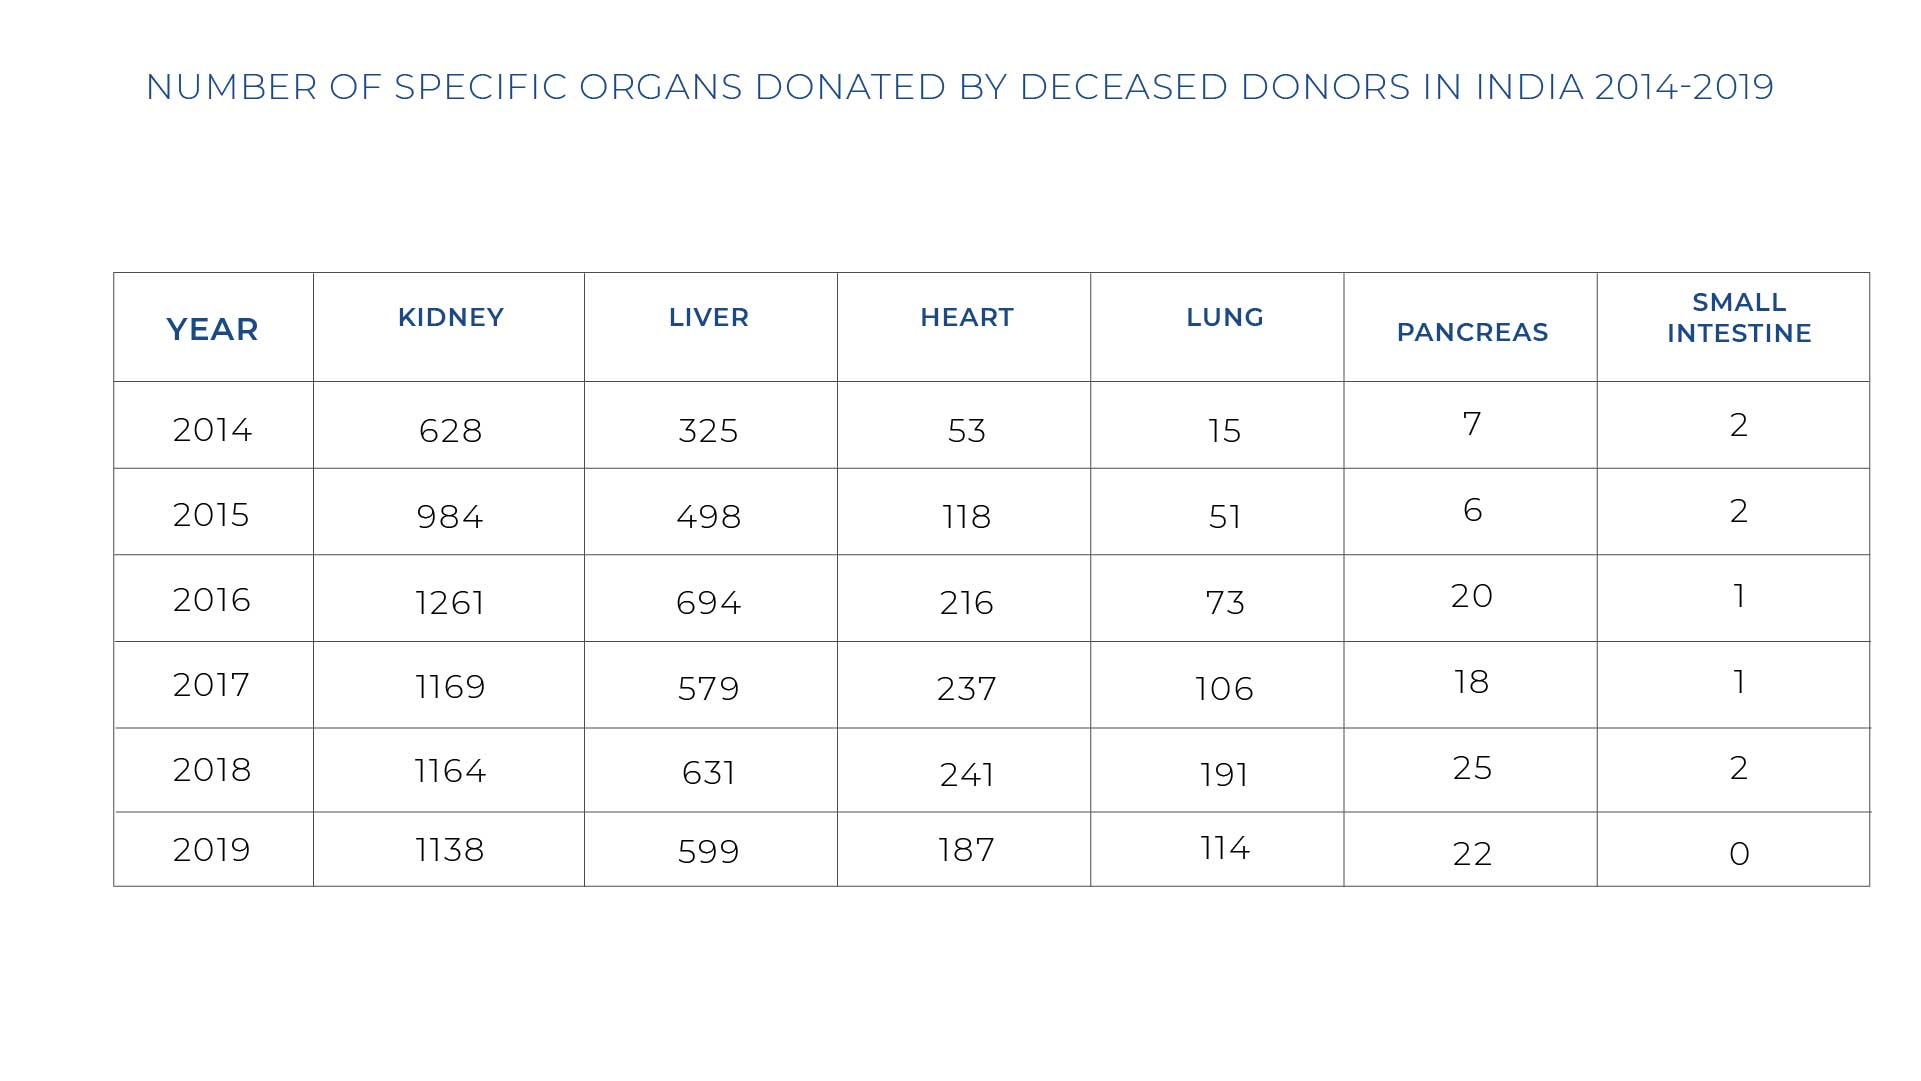 Specific Organs Donated By Deceased